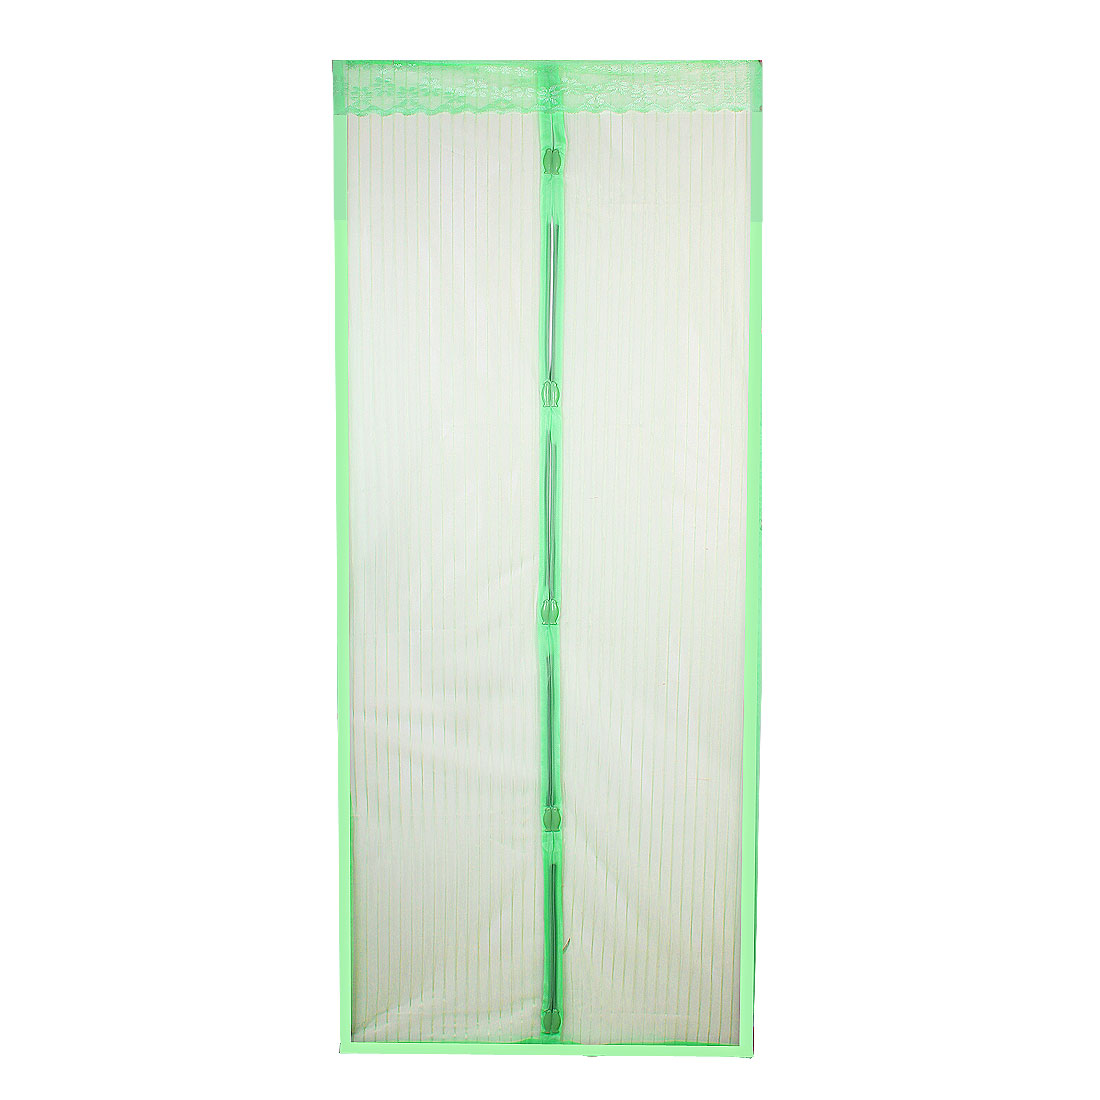 Home House 2.06 x 0.46m Green Nylon Magnetic Door Curtain w Installing Screws